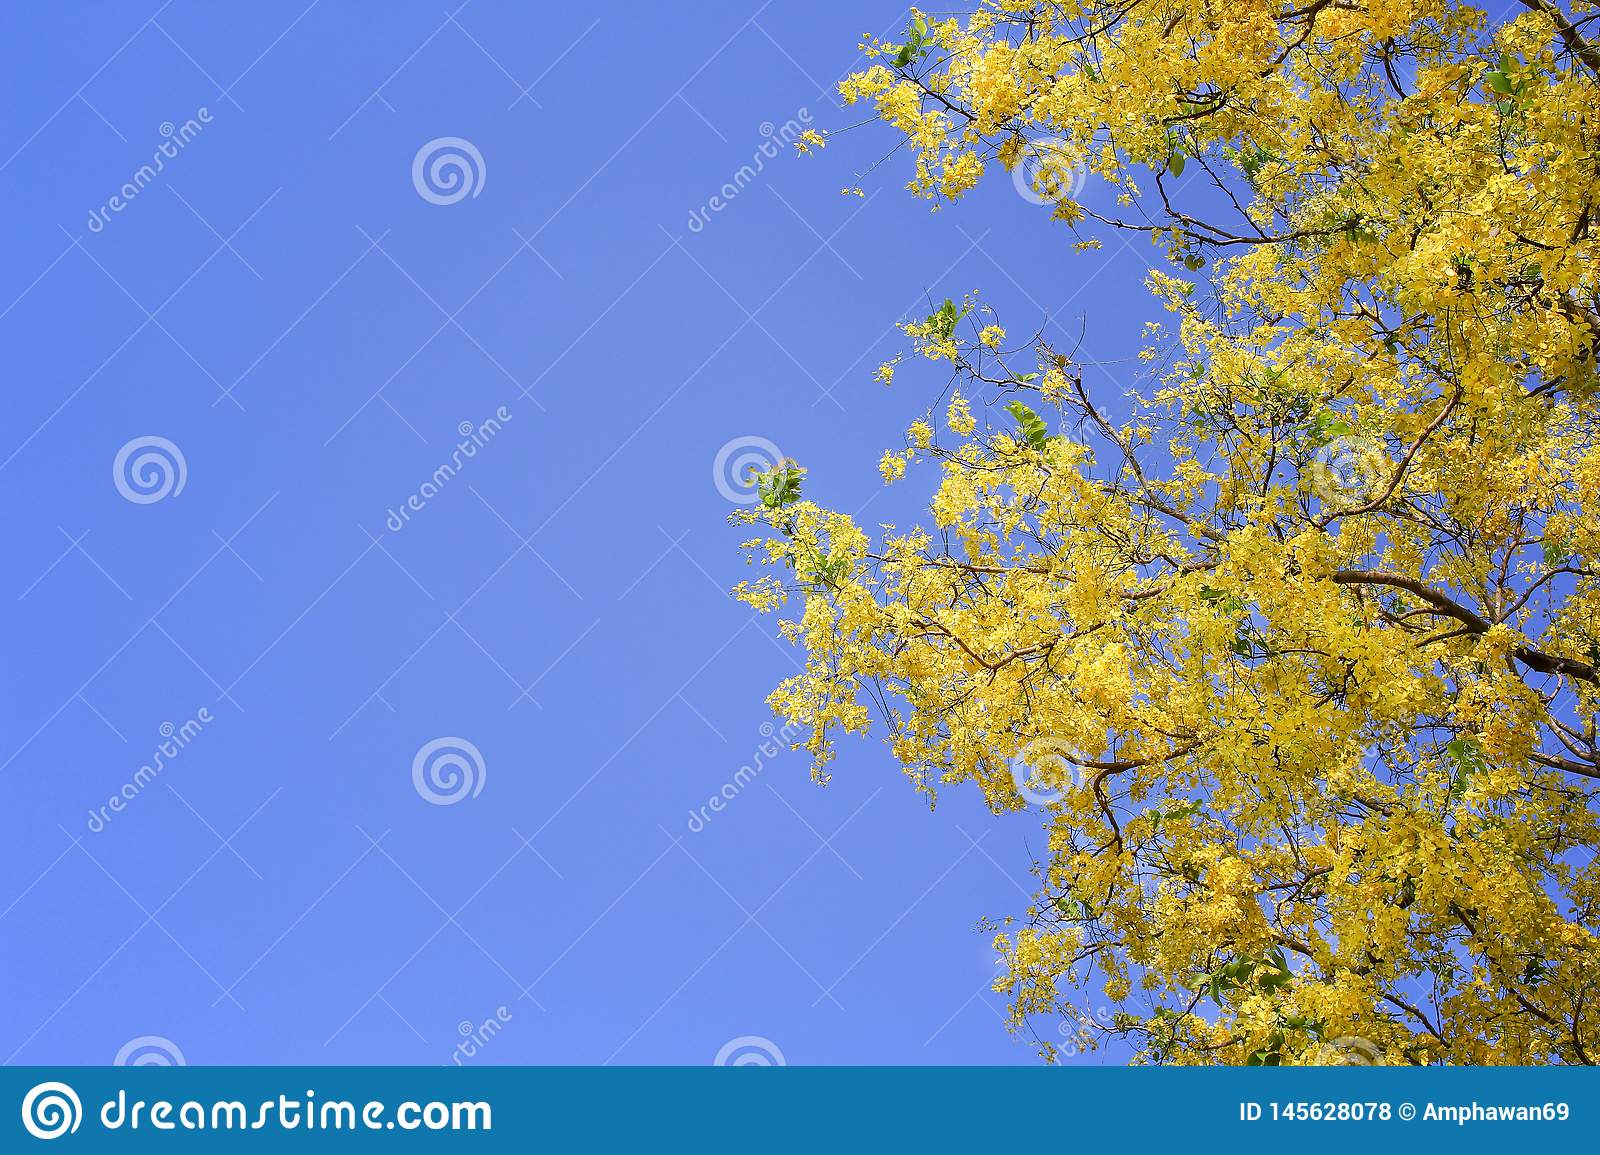 Colorful golden shower or ratchaphruek flowers blooming on